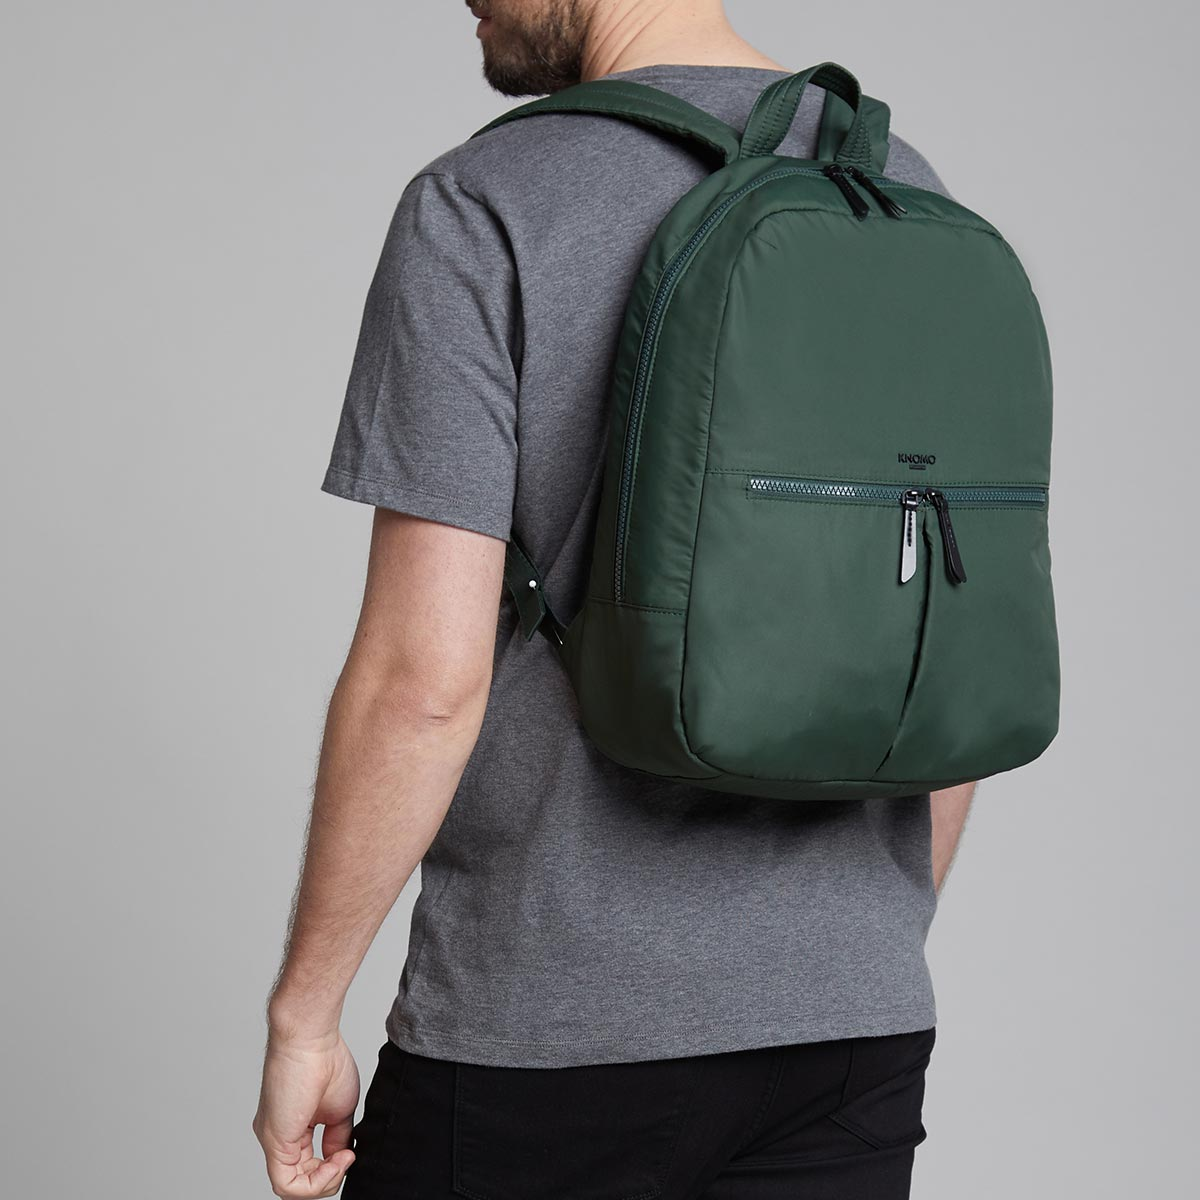 "KNOMO Berlin Laptop Backpack Male Model Wearing 15"" -  Bottle Green 